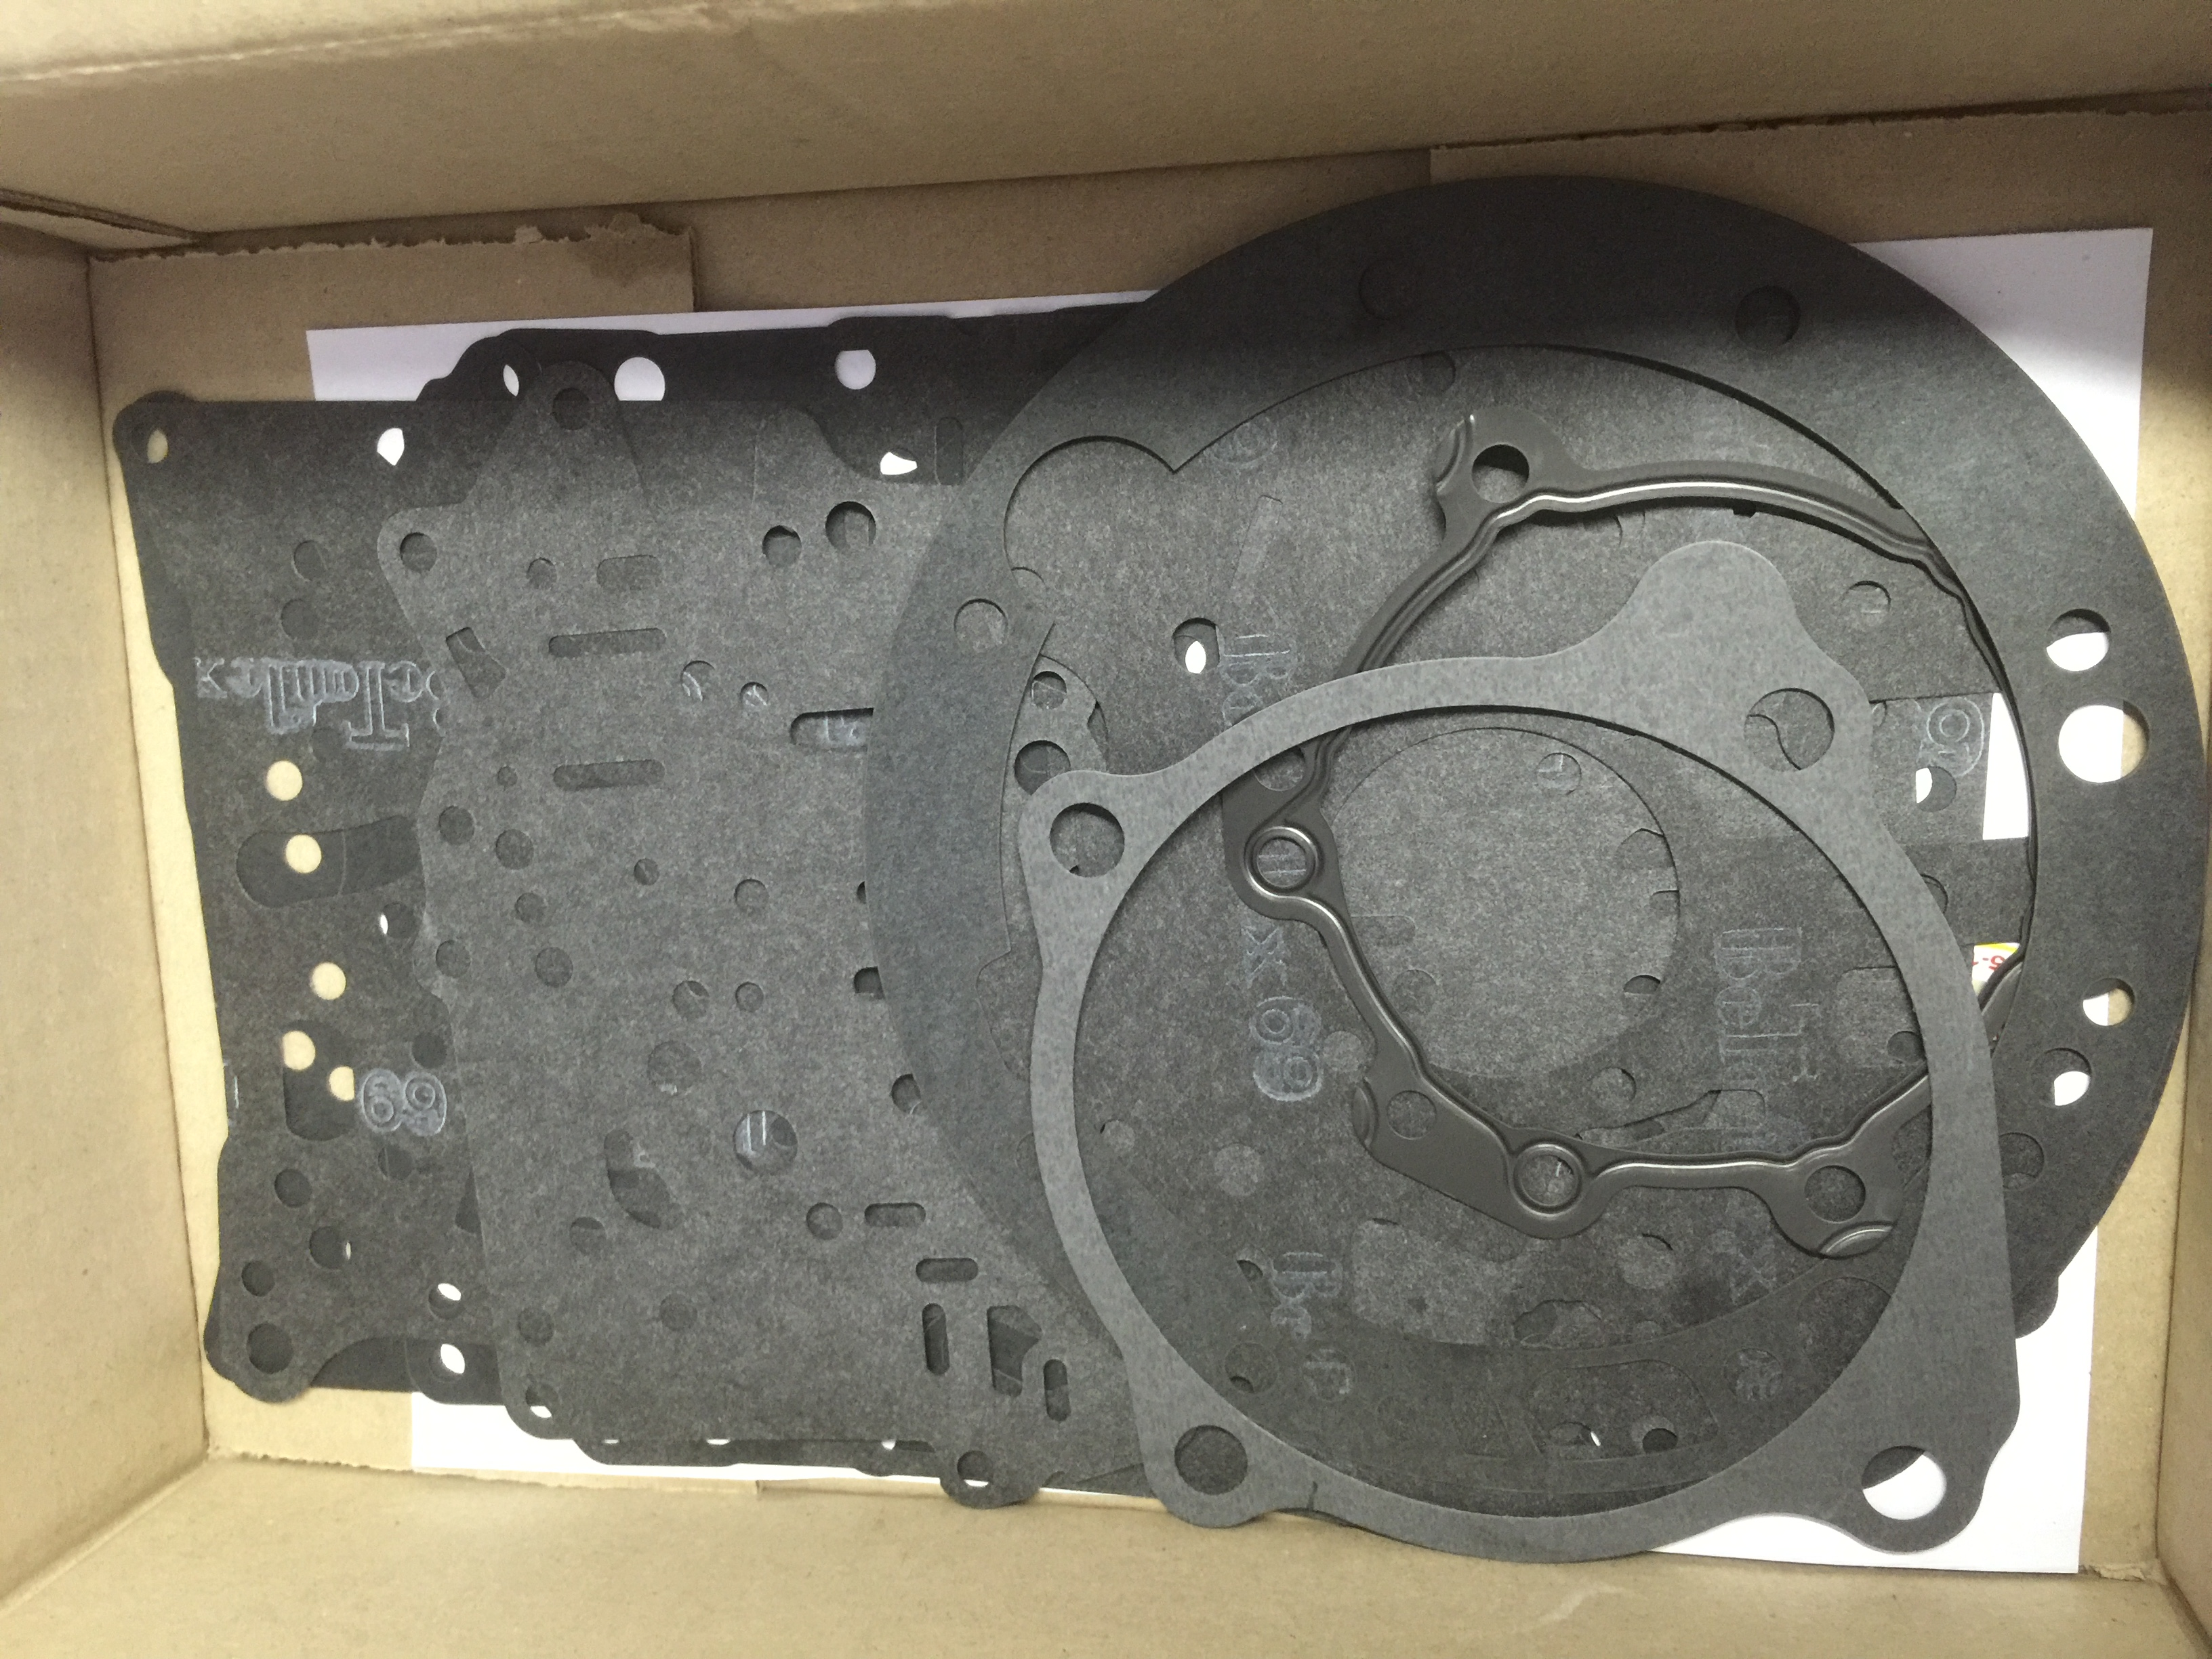 BA, BF, FG V8 Reconiditioned 4 Speed Auto, BTR, Stage 2 Shift Kit | Car  Parts QLD: Brisbane #2945060